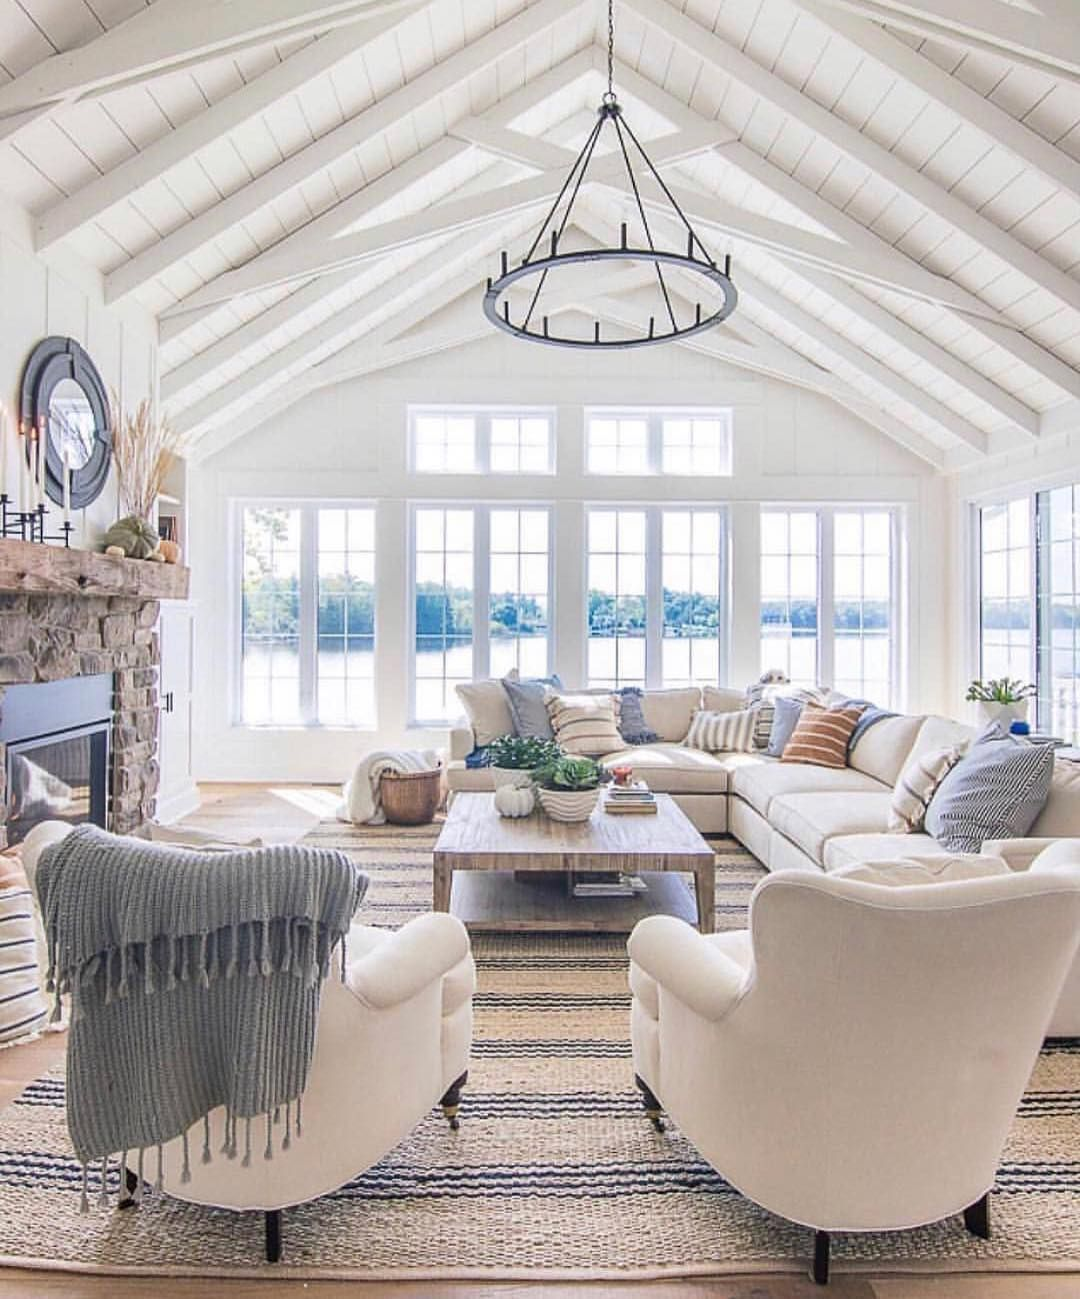 The Vintage Market On Instagram Those Vaulted Ceilings Are